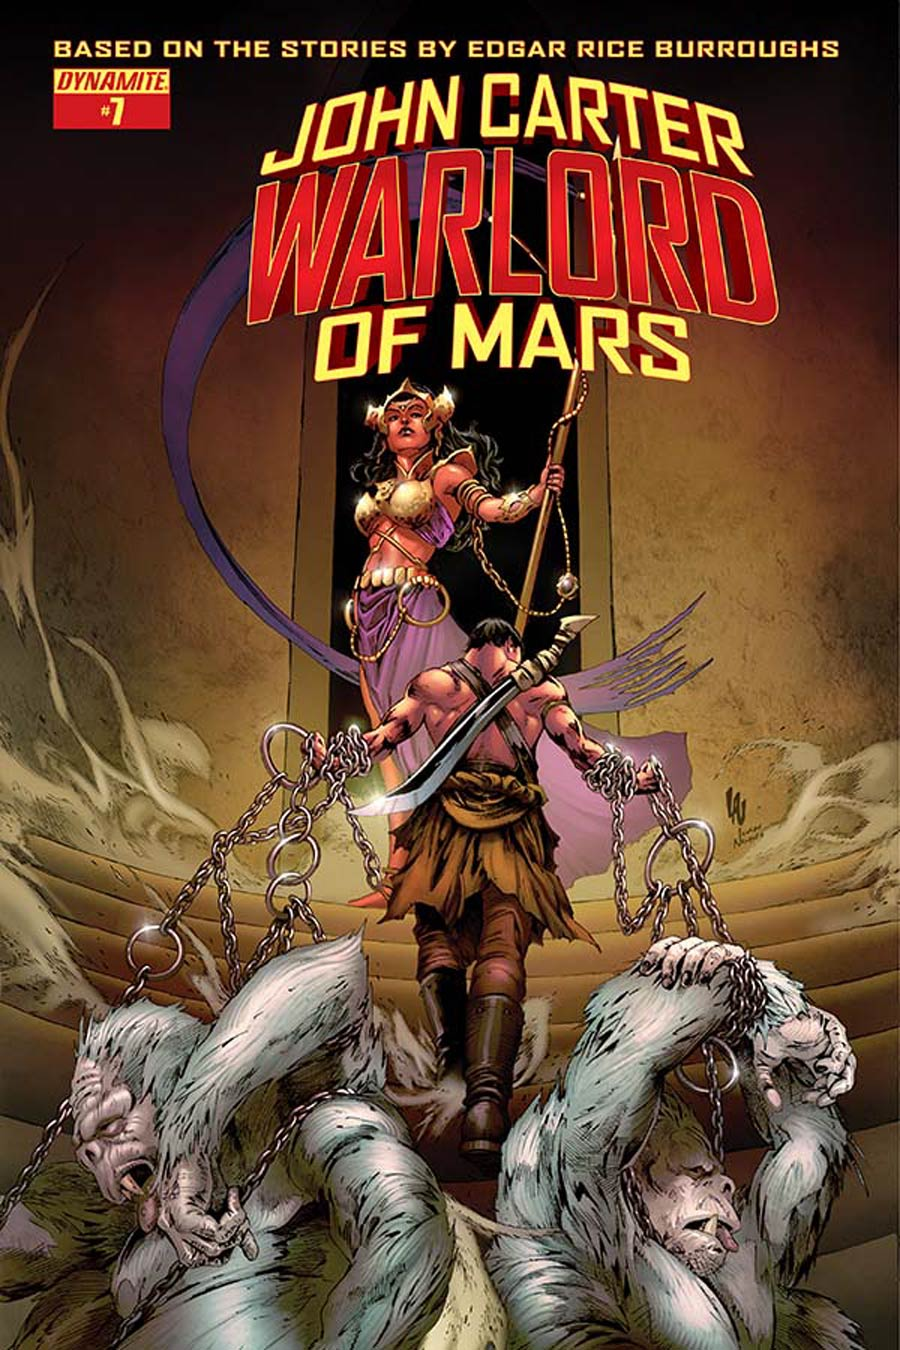 John Carter Warlord Of Mars Vol 2 #7 Cover D Variant Jonathan Lau Subscription Cover